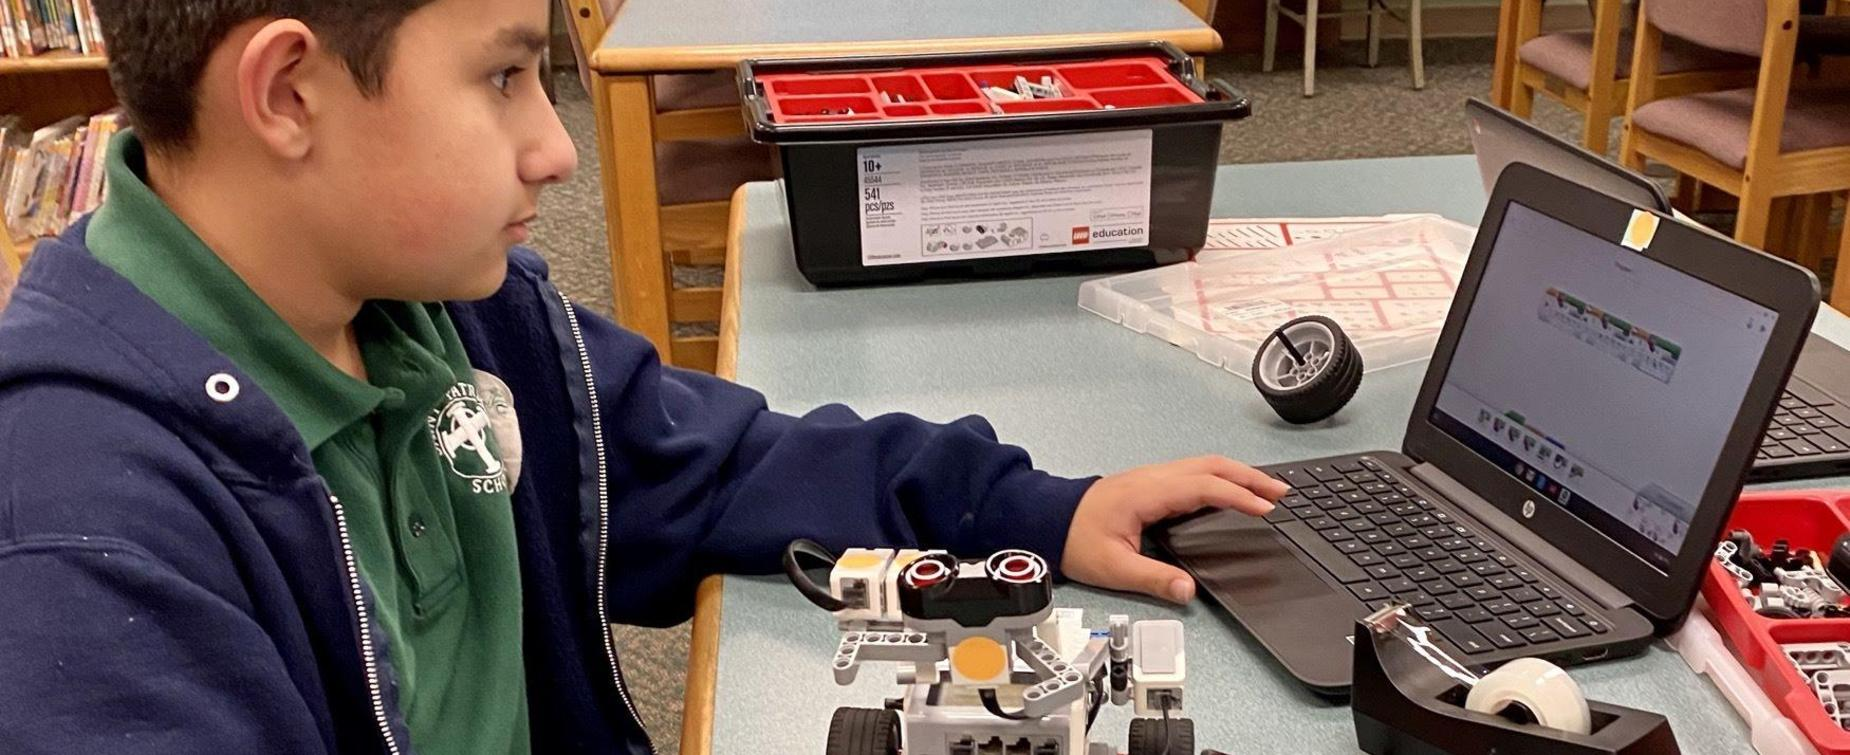 Student creating with robots